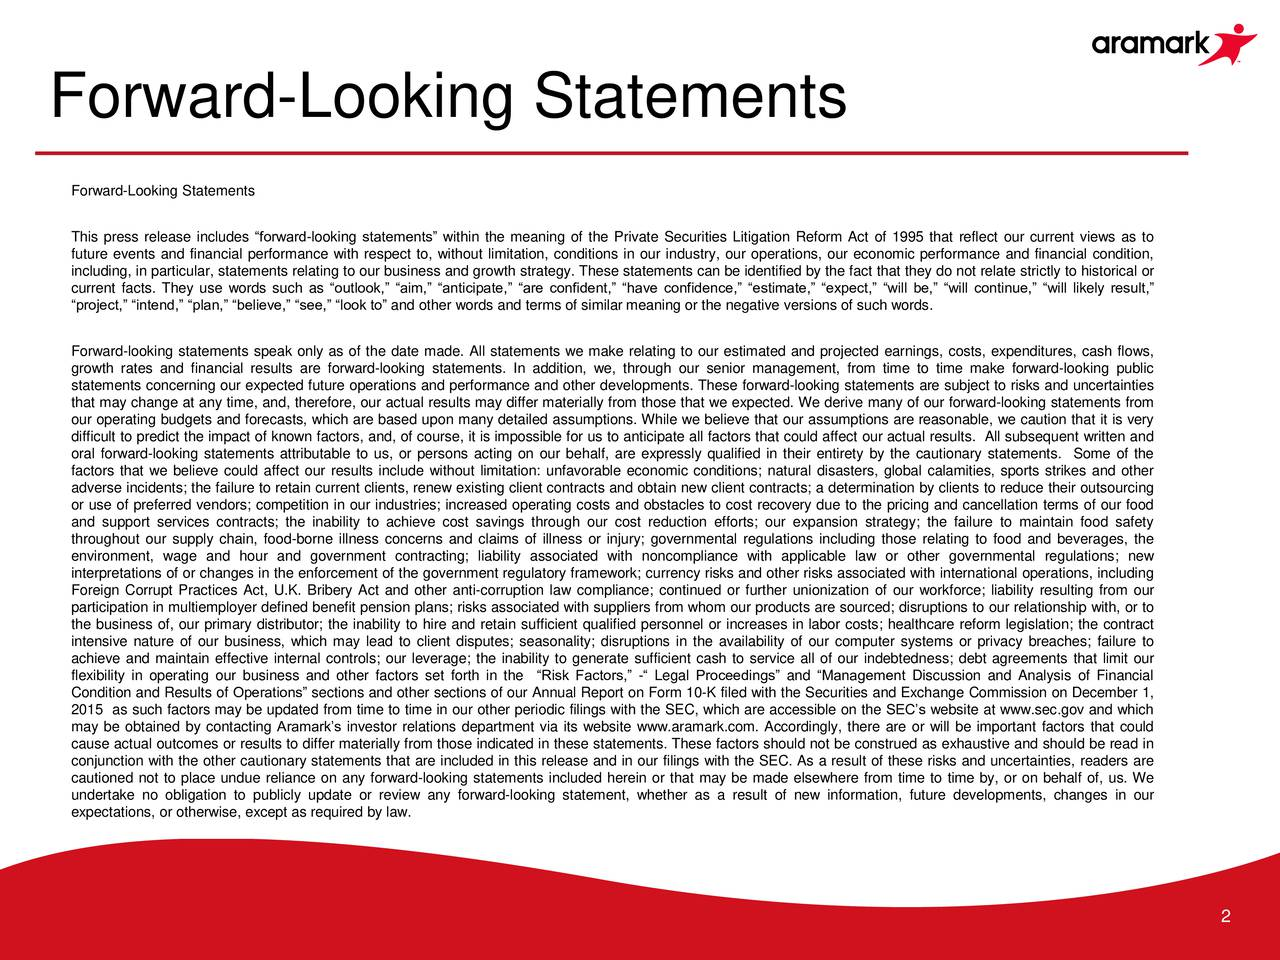 Forward-Looking Statements This press release includes forward-looking statements within the meaning of the Private Securities Litigation Reform Act of 1995 that reflect our current views as to future events and financial performance with respect to, without limitation, conditions in our industry, our operations, our economic performance and financial condition, including, in particular, statements relating to our business and growth strategy. These statements can be identified by the fact that they do not relate strictly to historical or current facts. They use words such as outlook, aim, anticipate, are confident, have confidence, estimate, expect, will be, will continue, will likely result, project, intend, plan, believe, see, look to and other words and terms of similar meaning or the negative versions of such words. Forward-looking statements speak only as of the date made. All statements we make relating to our estimated and projected earnings, costs, expenditures, cash flows, growth rates and financial results are forward-looking statements. In addition, we, through our senior management, from time to time make forward-looking public statements concerning our expected future operations and performance and other developments. These forward-looking statements are subject to risks and uncertainties that may change at any time, and, therefore, our actual results may differ materially from those that we expected. We derive many of our forward-looking statements from our operating budgets and forecasts, which are based upon many detailed assumptions. While we believe that our assumptions are reasonable, we caution that it is very difficult to predict the impact of known factors, and, of course, it is impossible for us to anticipate all factors that could affect our actual results. All subsequent written and oral forward-looking statements attributable to us, or persons acting on our behalf, are expressly qualified in their entirety by the cautionary statements. Som